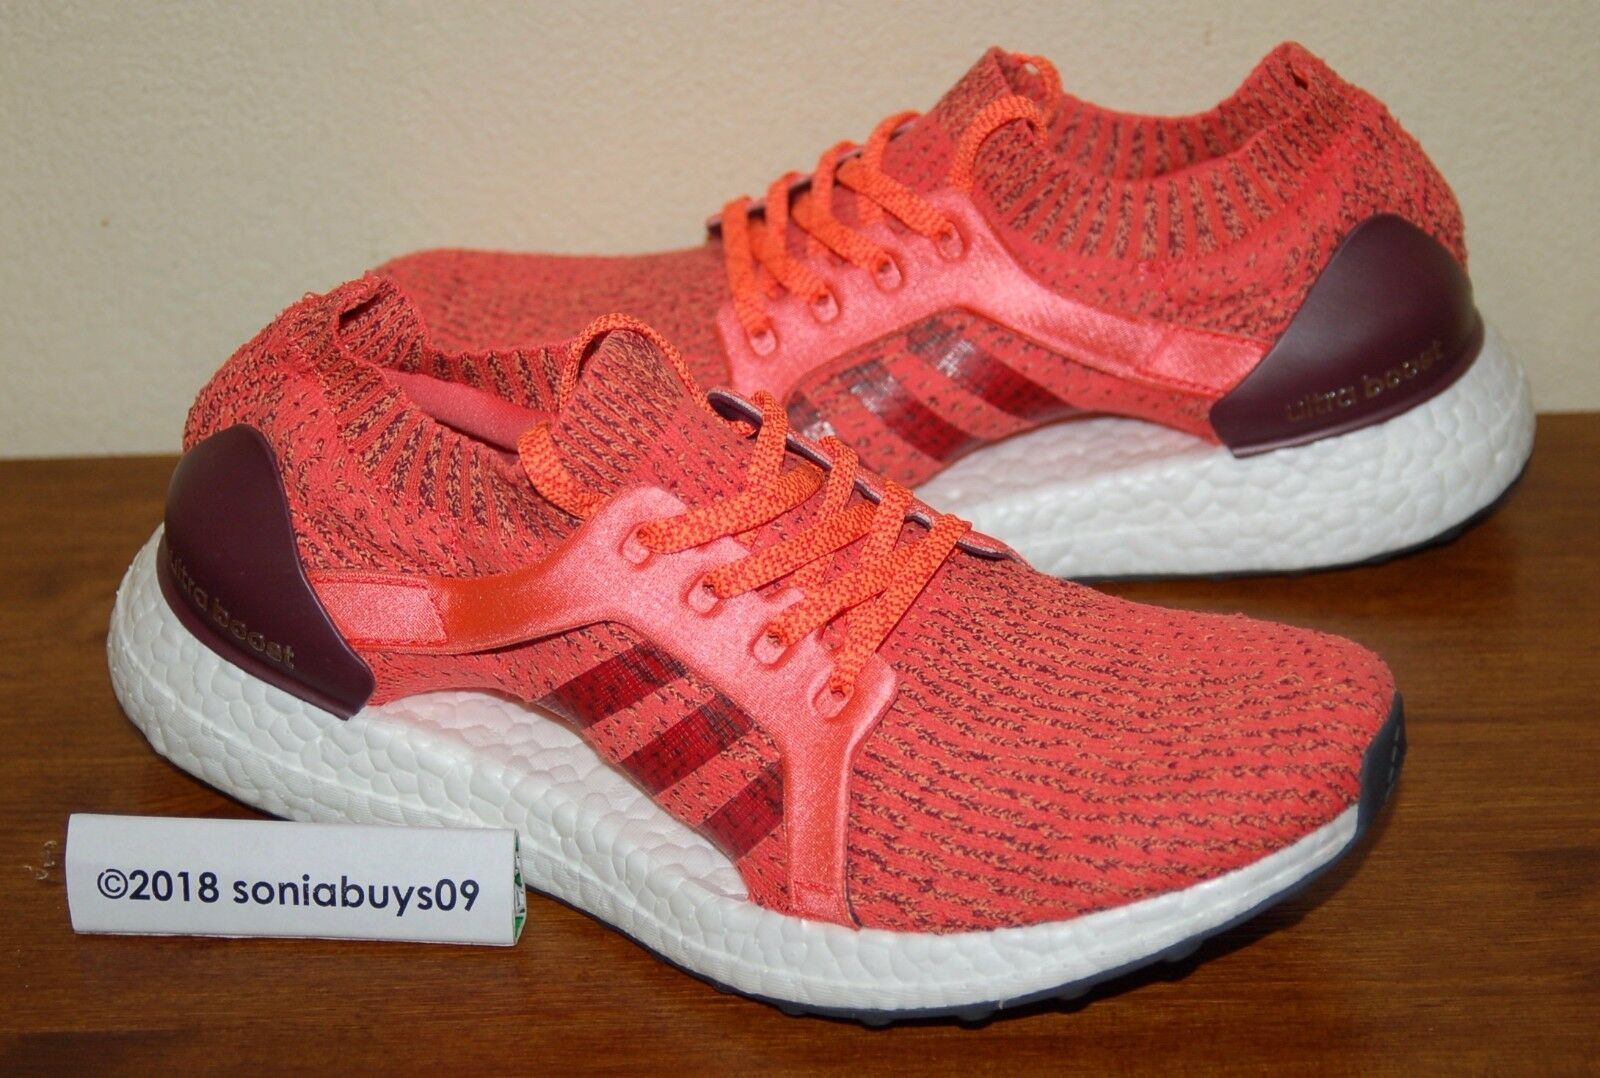 Adidas  Women's UltraBoost X Running shoes, BB1694, Easy Coral, US Size 8.5  we supply the best